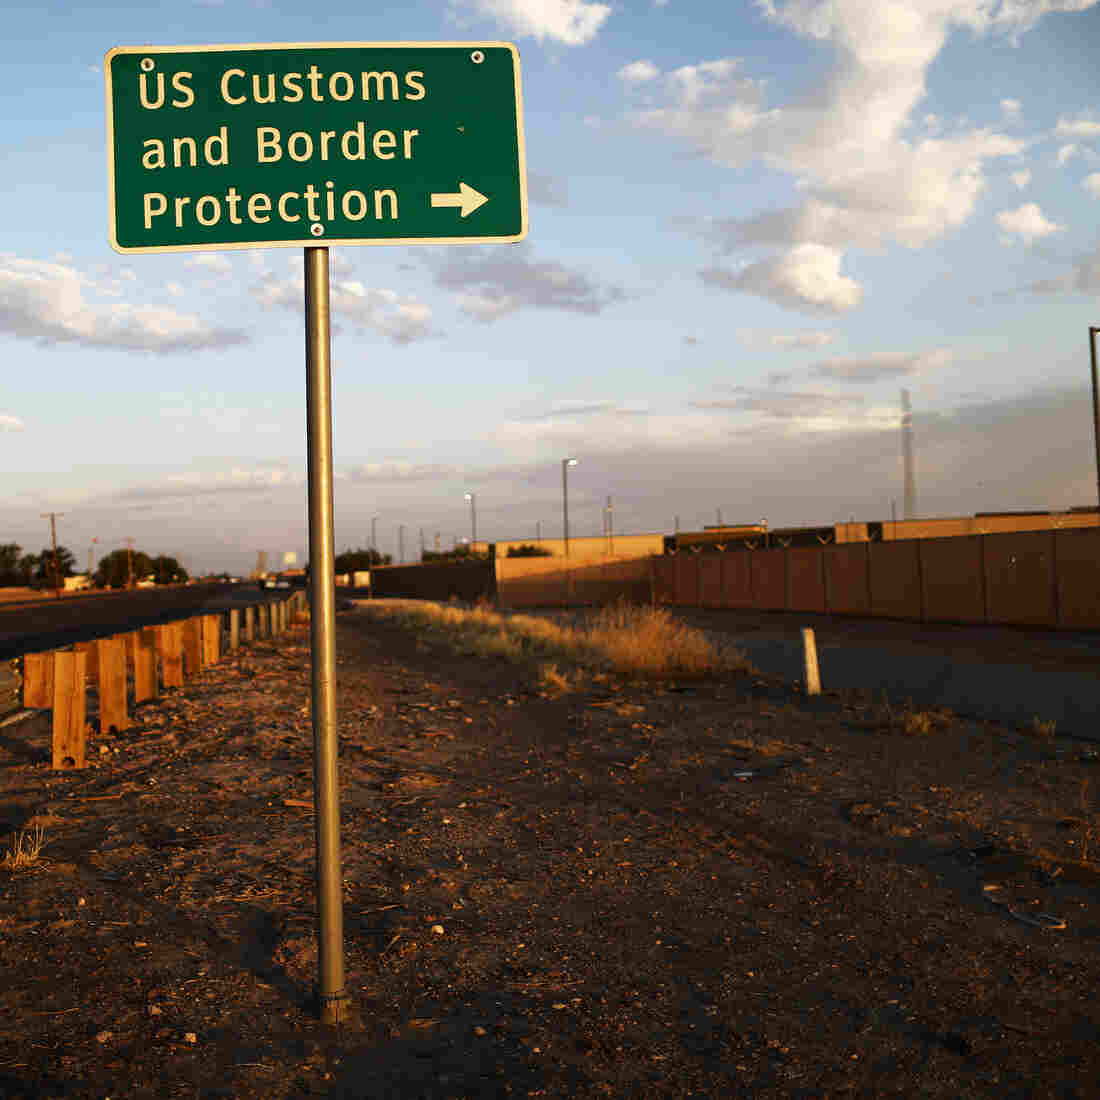 House clears Senate version of border aid bill